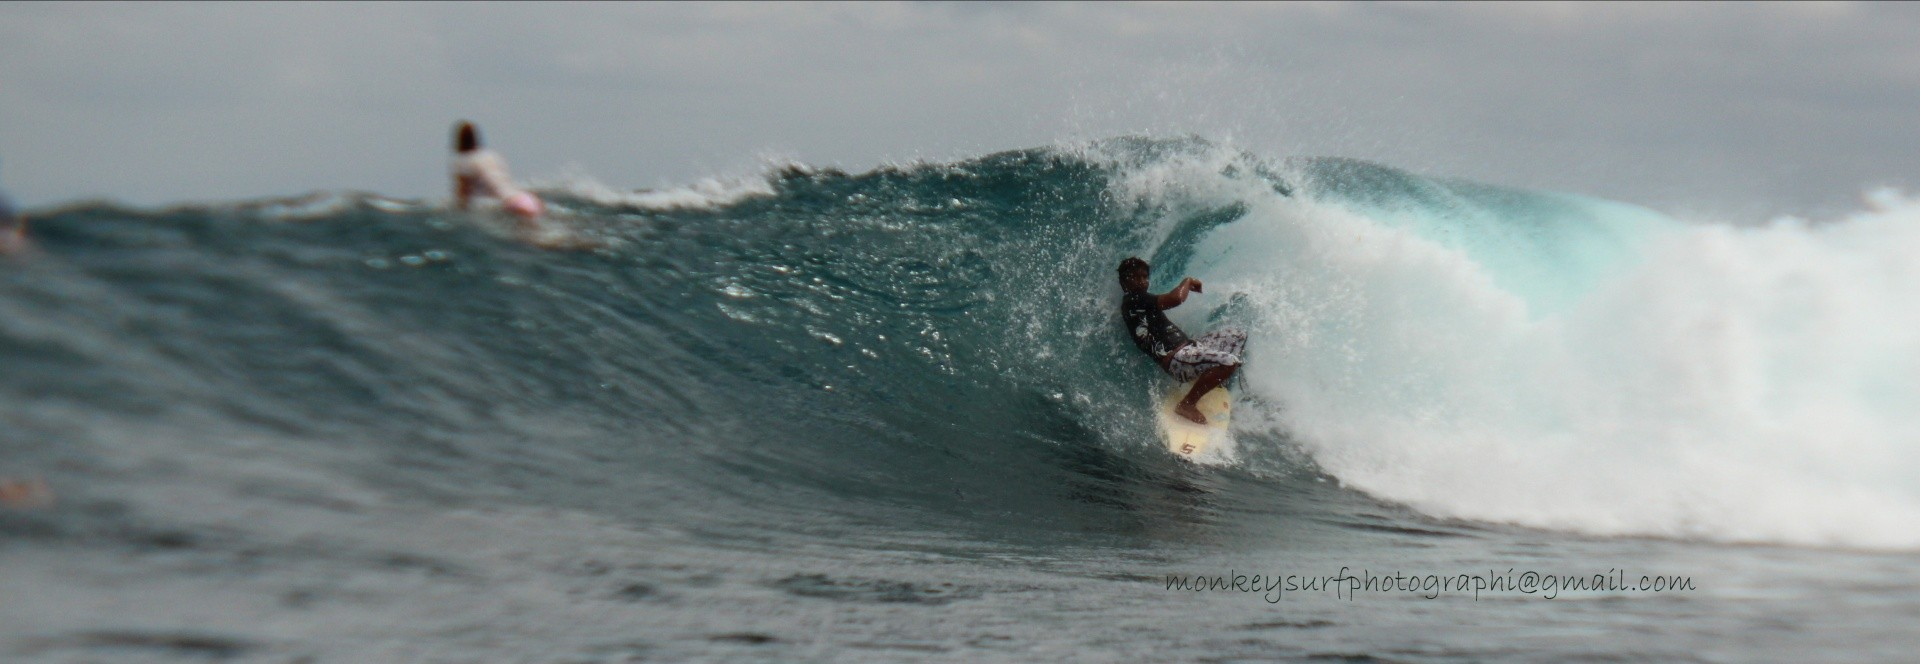 Monkey Surfing's photo of Lacerations